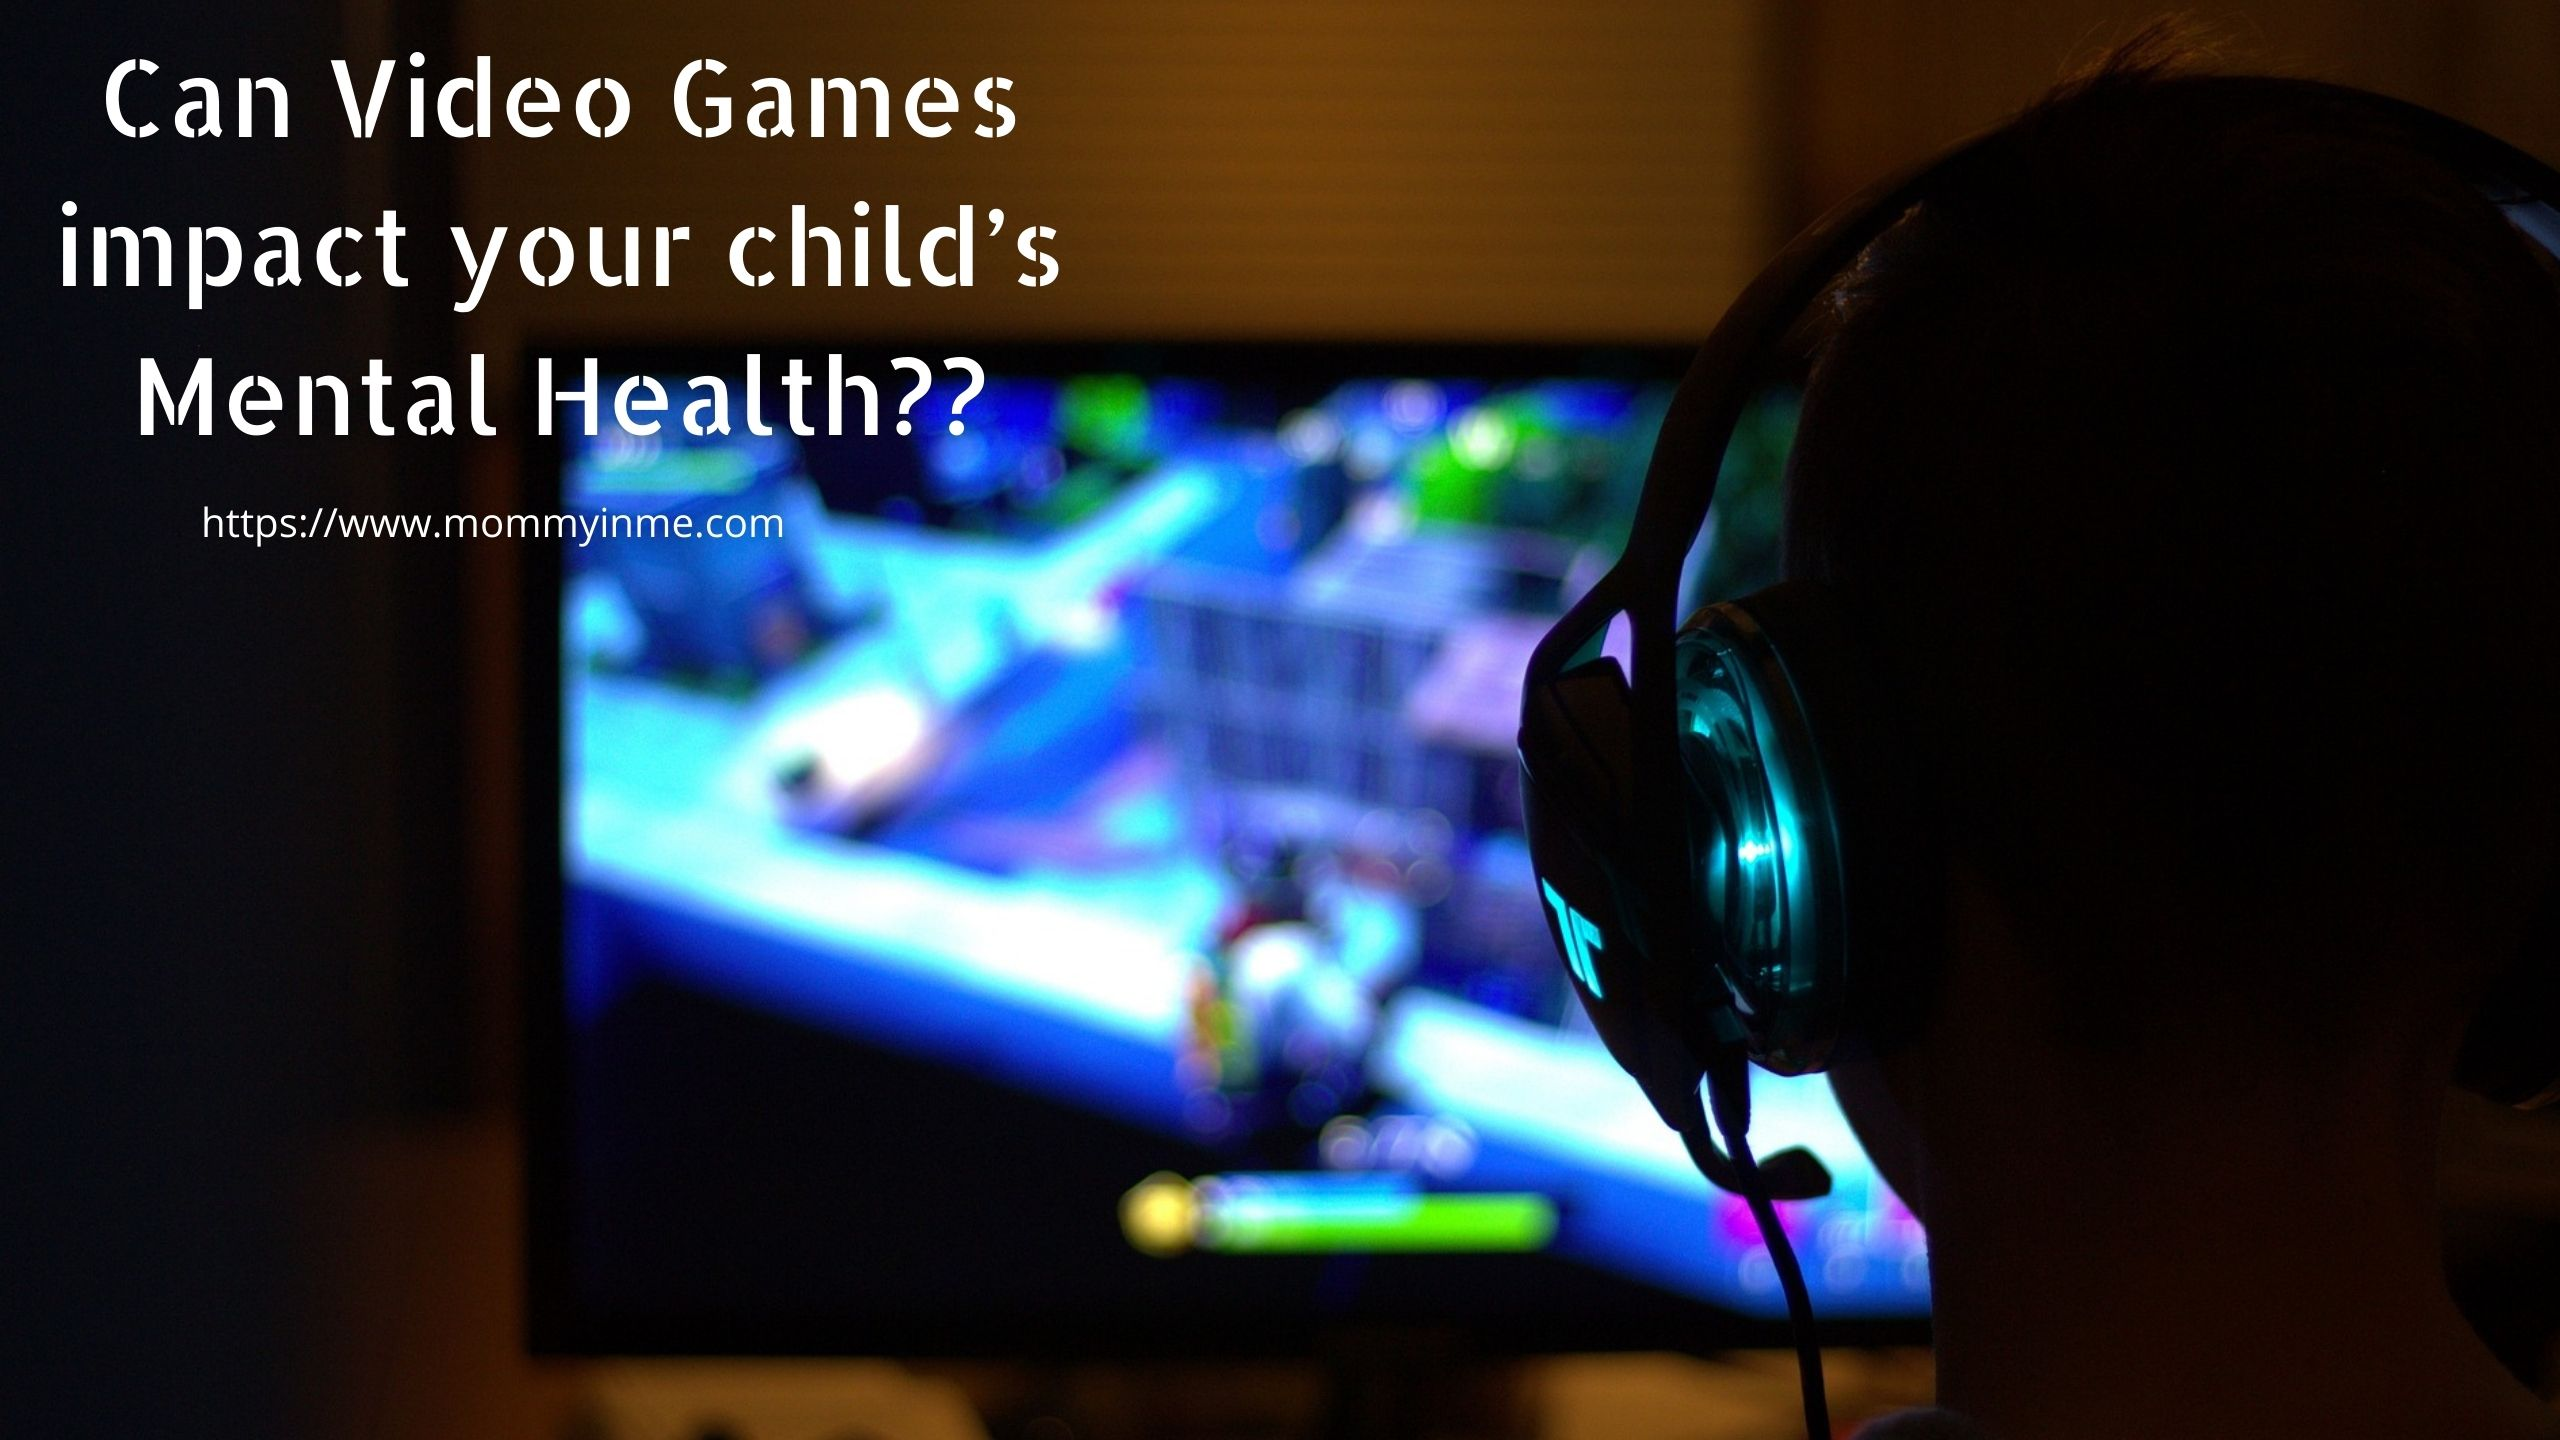 How Video Games Impact Your Child's Mental Health?